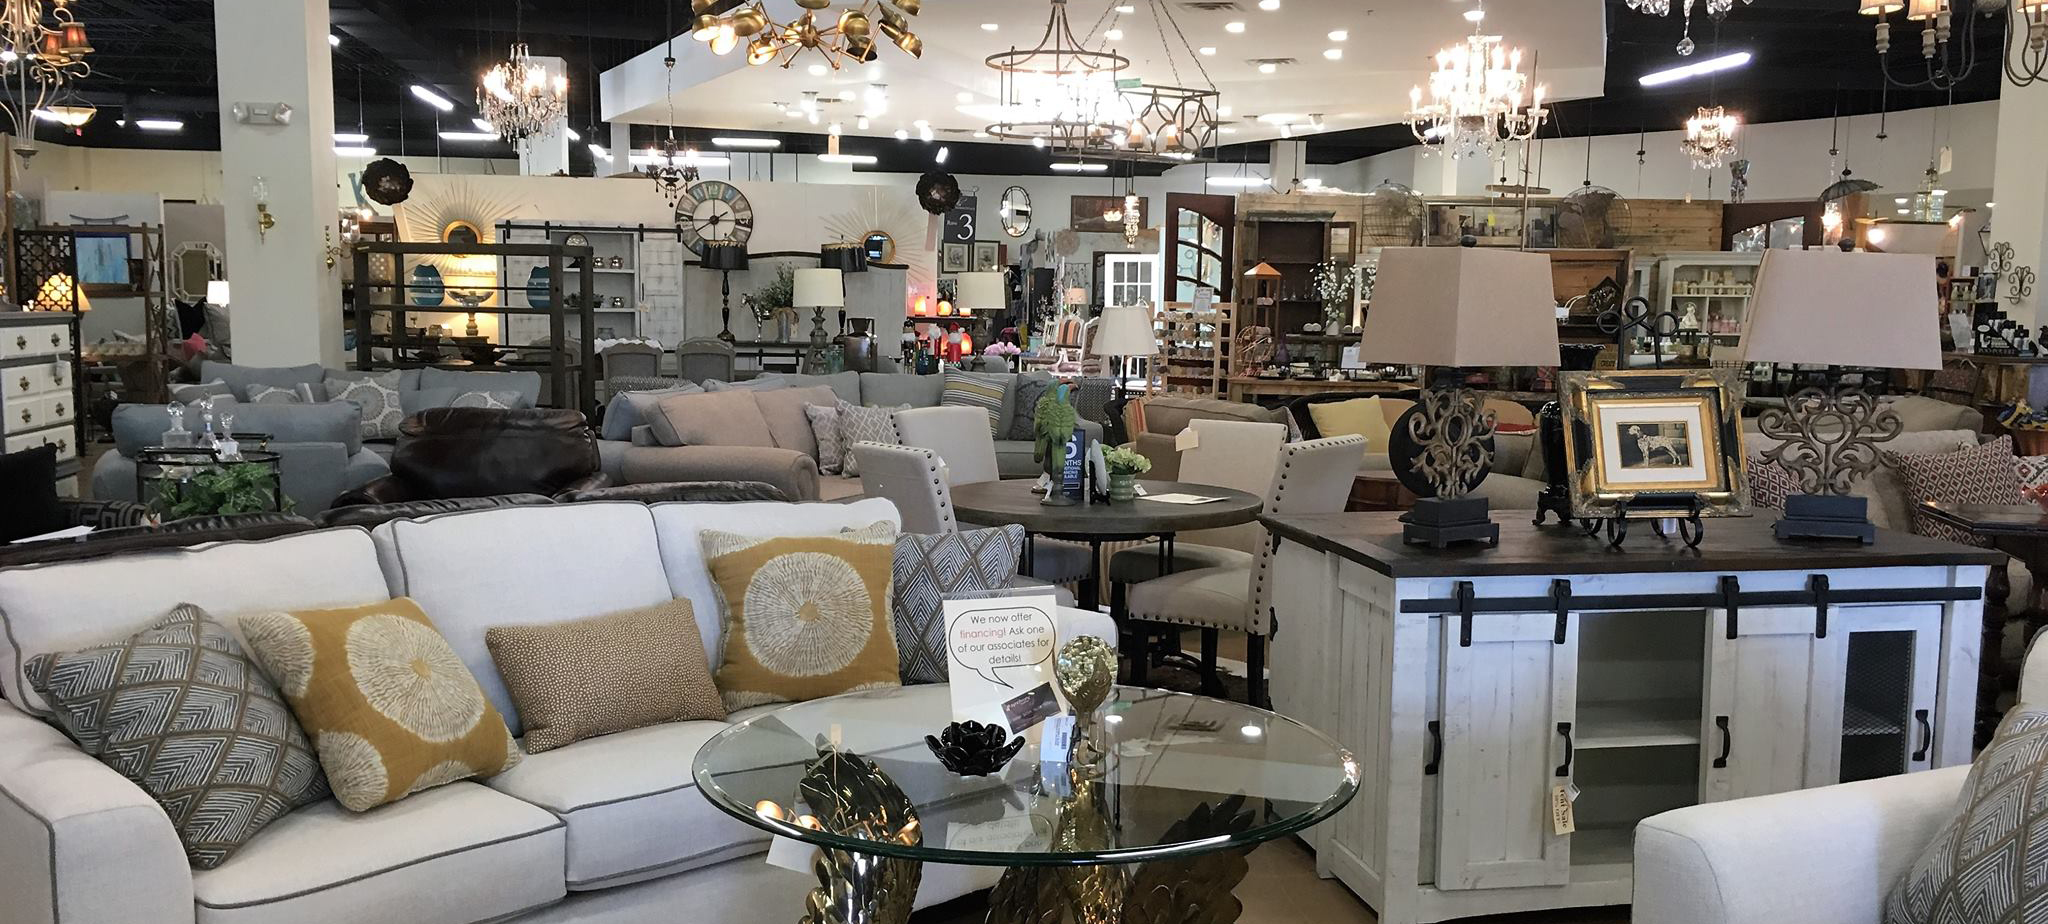 Genial U201cRelocating To Charlotte? Make Your Move Easy With One Stop Shopping At  Sardis Marketplace. We Are An Innovative Fusion Of Name Brand Quality  Consignment ...